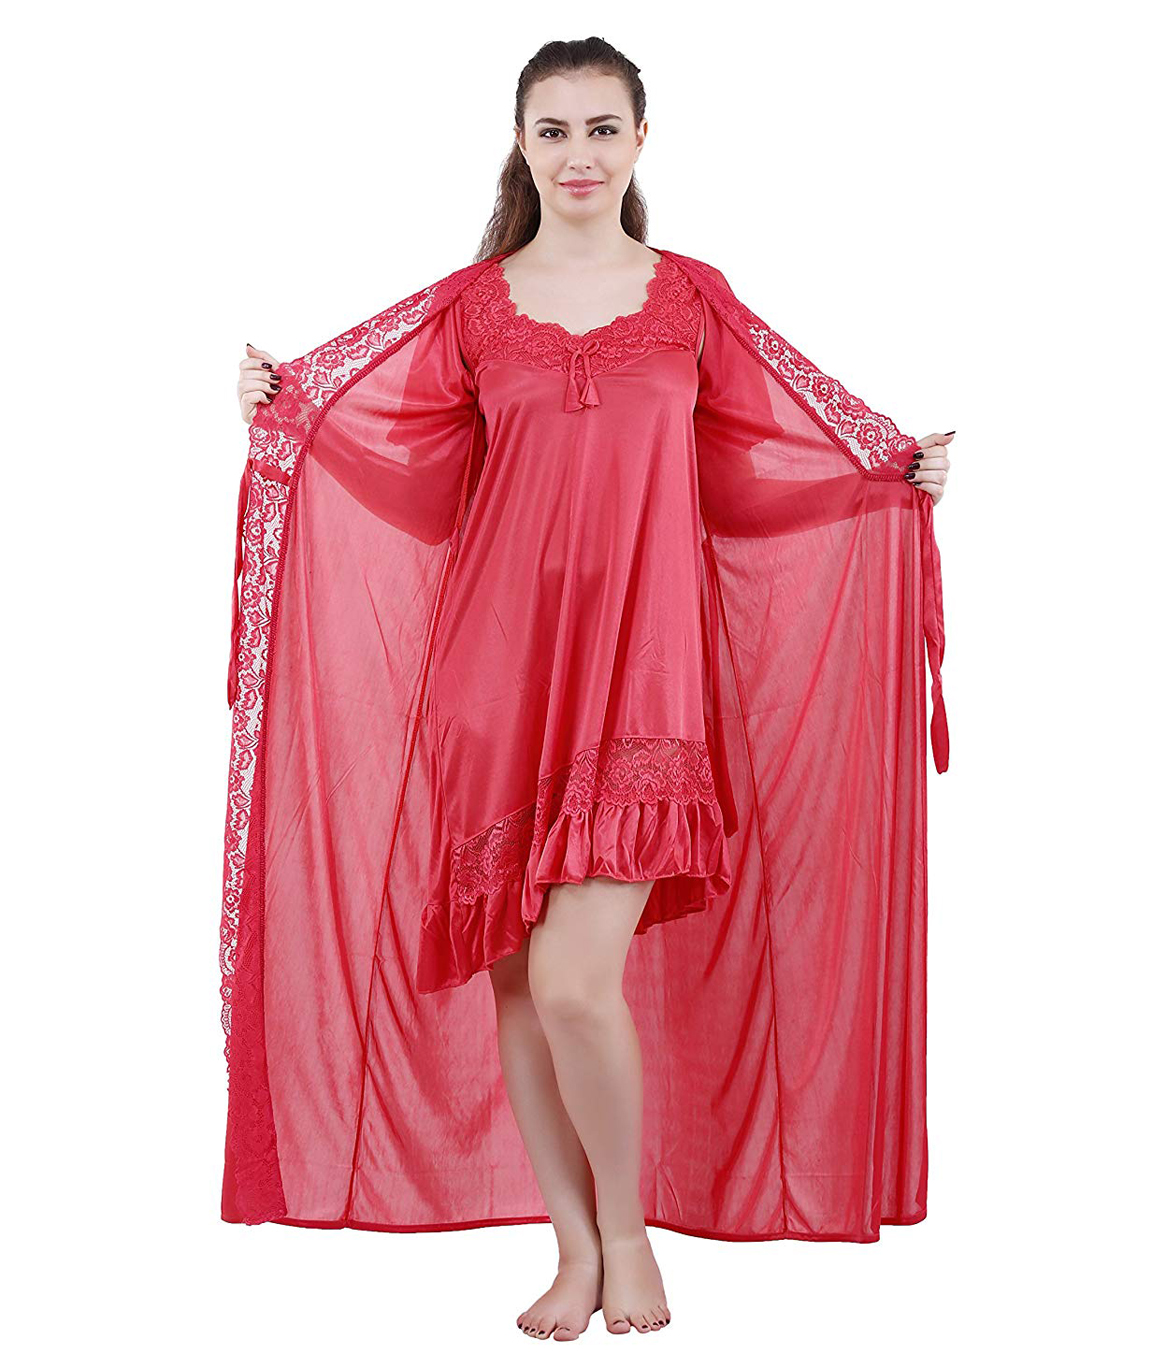 Romaisa Women`s Satin Lace Work Nightdress with Robe (Size - Small, Medium, Large) (Pack of 2 Pcs) COLOUR : LIGHT CORAL